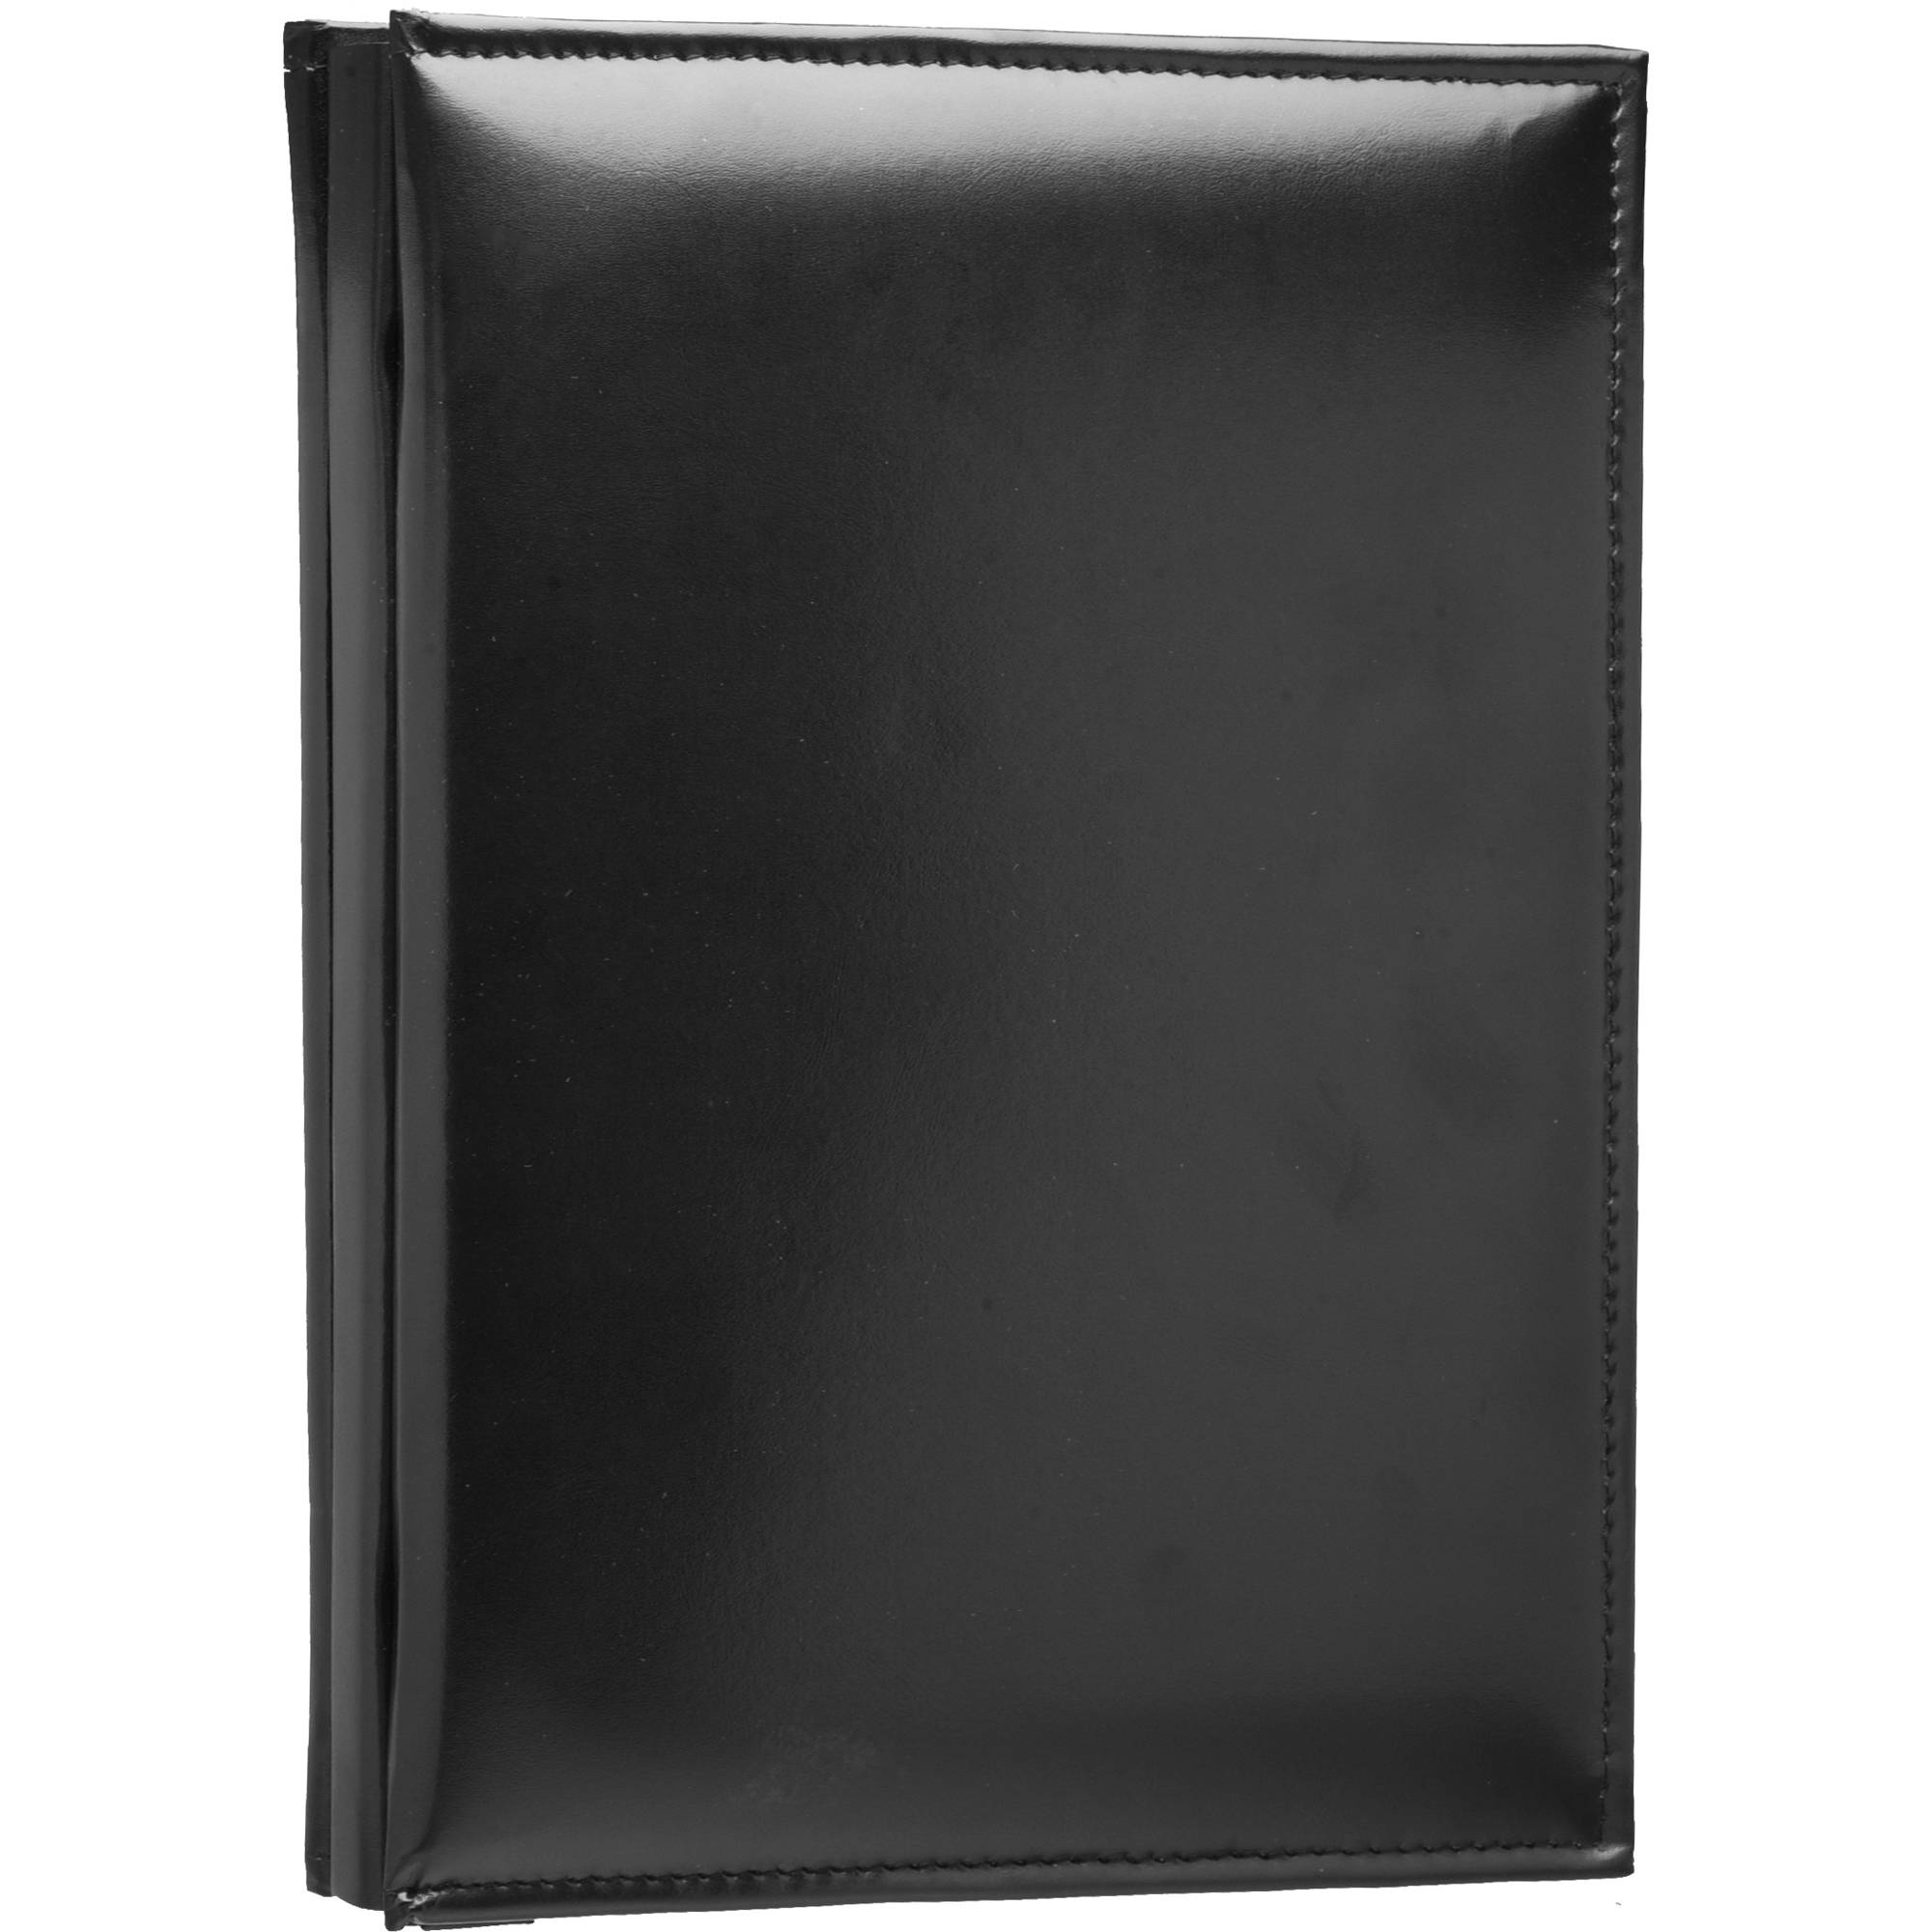 Pioneer Photo Albums 24cdr Storage Pages For The Cd 48 24cdr Bh